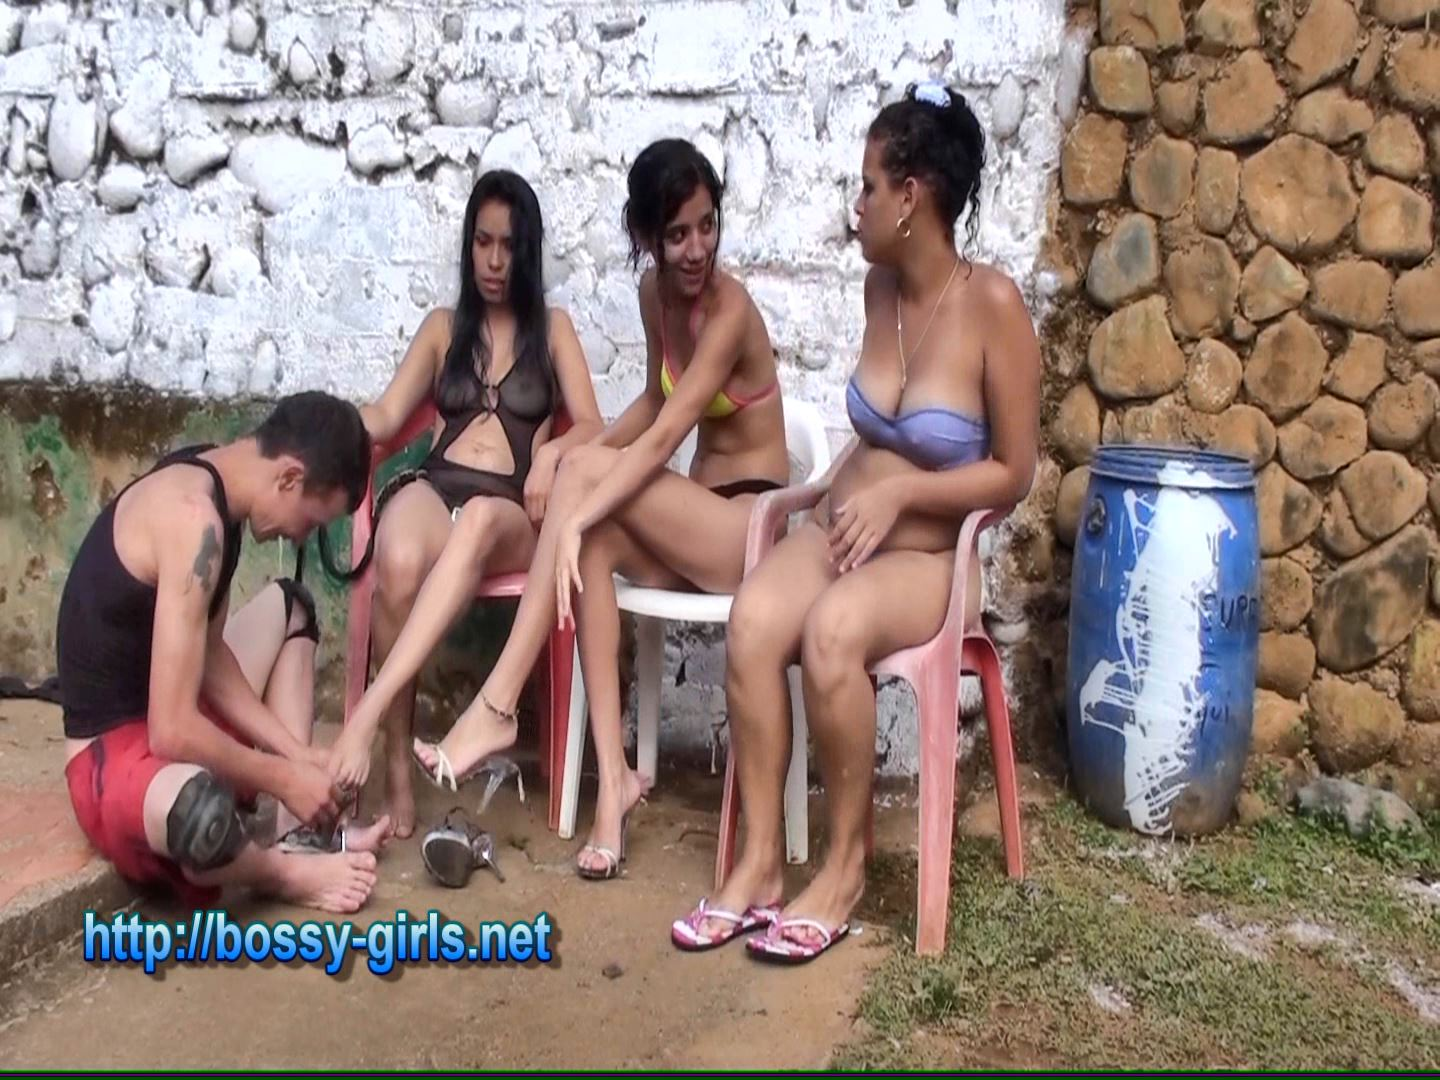 Mistress Isabel, Jane Guerrero, Mistress Angie In Scene: DAY OF THE BRASSY PUNKS 07 Honoring the Precious Girls - BOSSY GIRLS - FULL HD/1080p/WMV